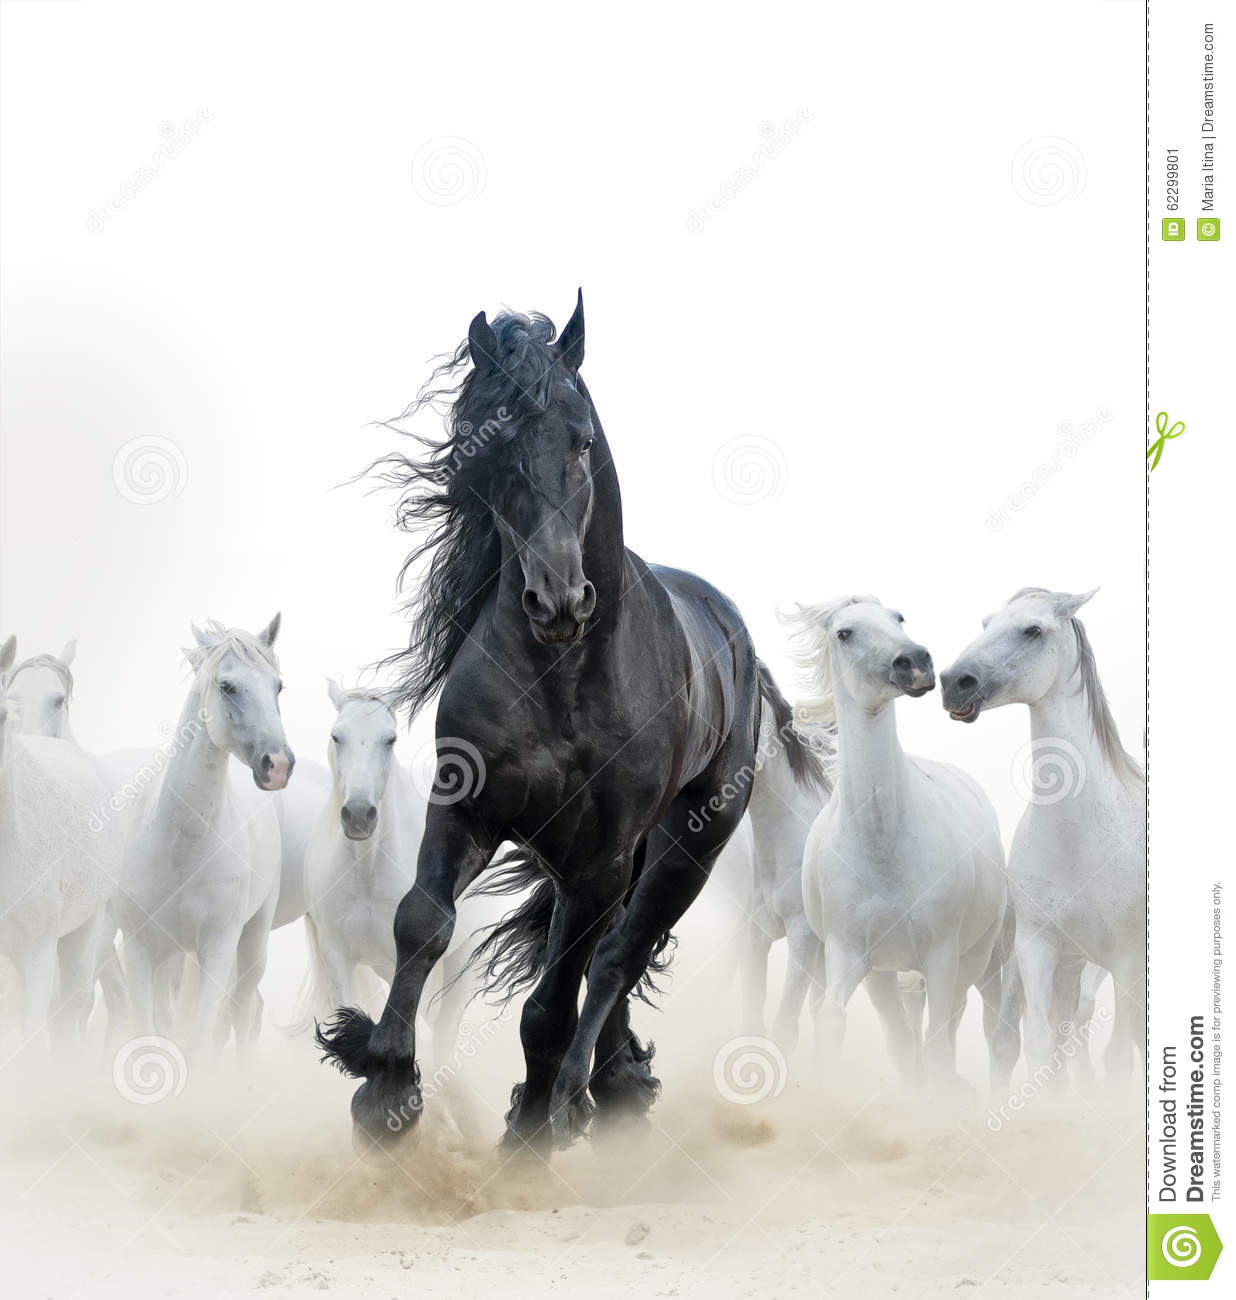 34 431 Black Stallion Photos Free Royalty Free Stock Photos From Dreamstime